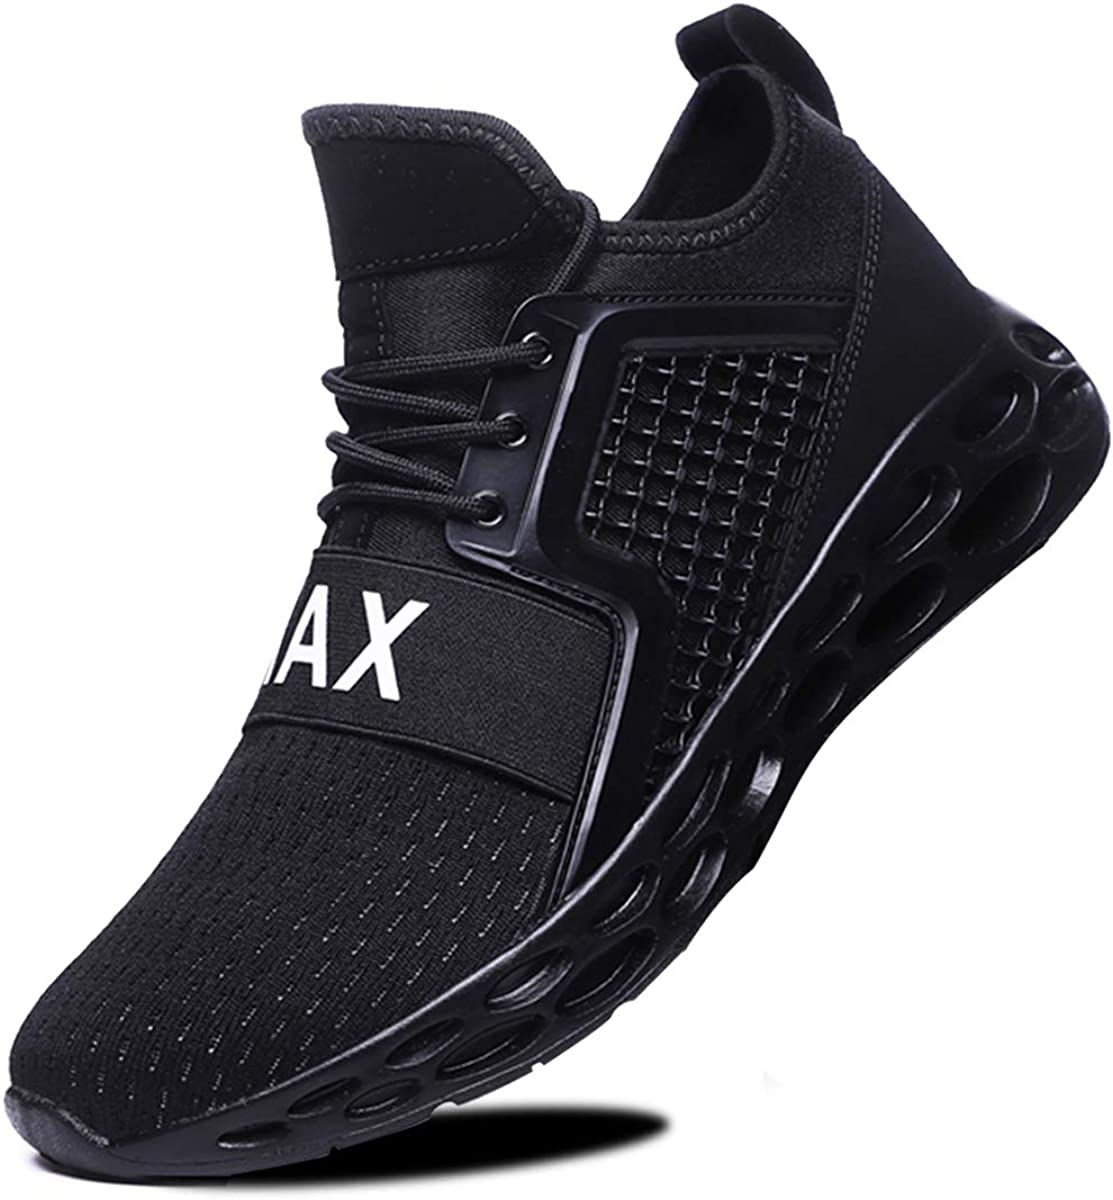 LSGEGO Men Tennis Shoes Fashion Sneakers Men s Walking Running Shoes Breathable Casual Sprot Lightwight